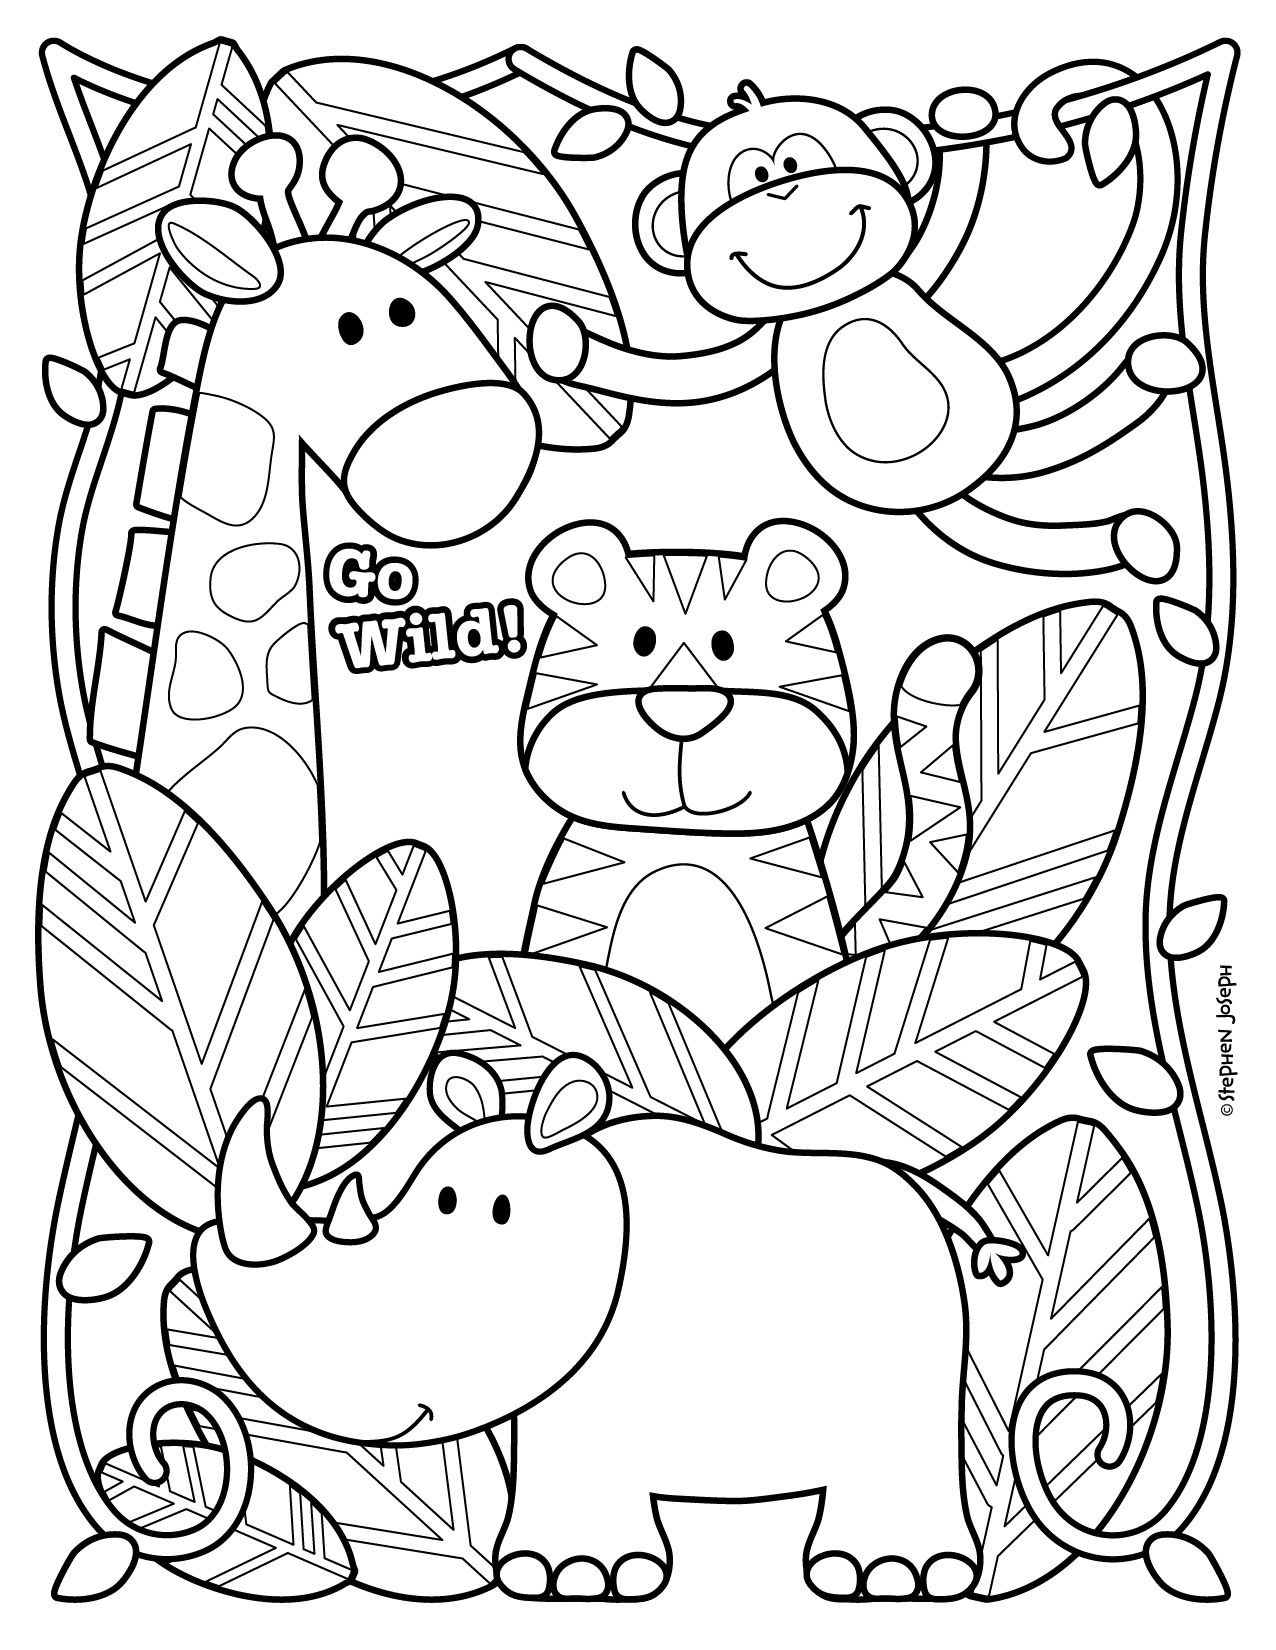 Zoo Coloring Page - Printable & Free! By Stephen Joseph Gifts